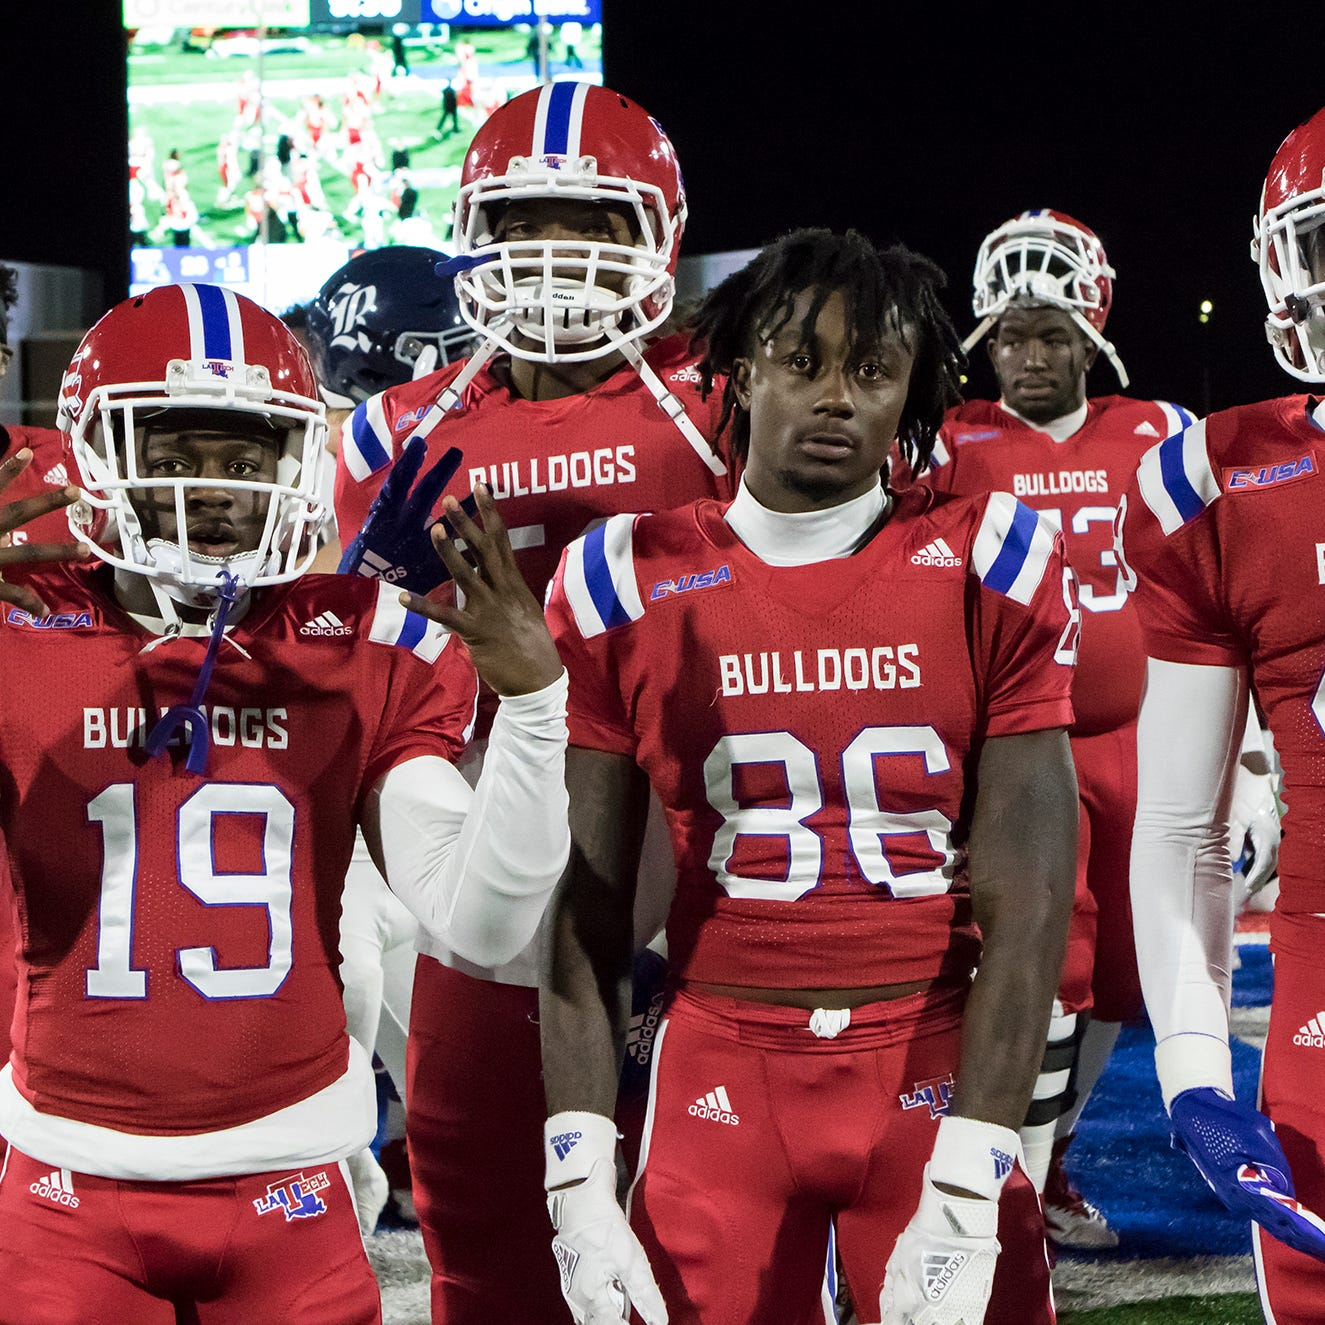 Louisiana Tech announces 2019 football schedule